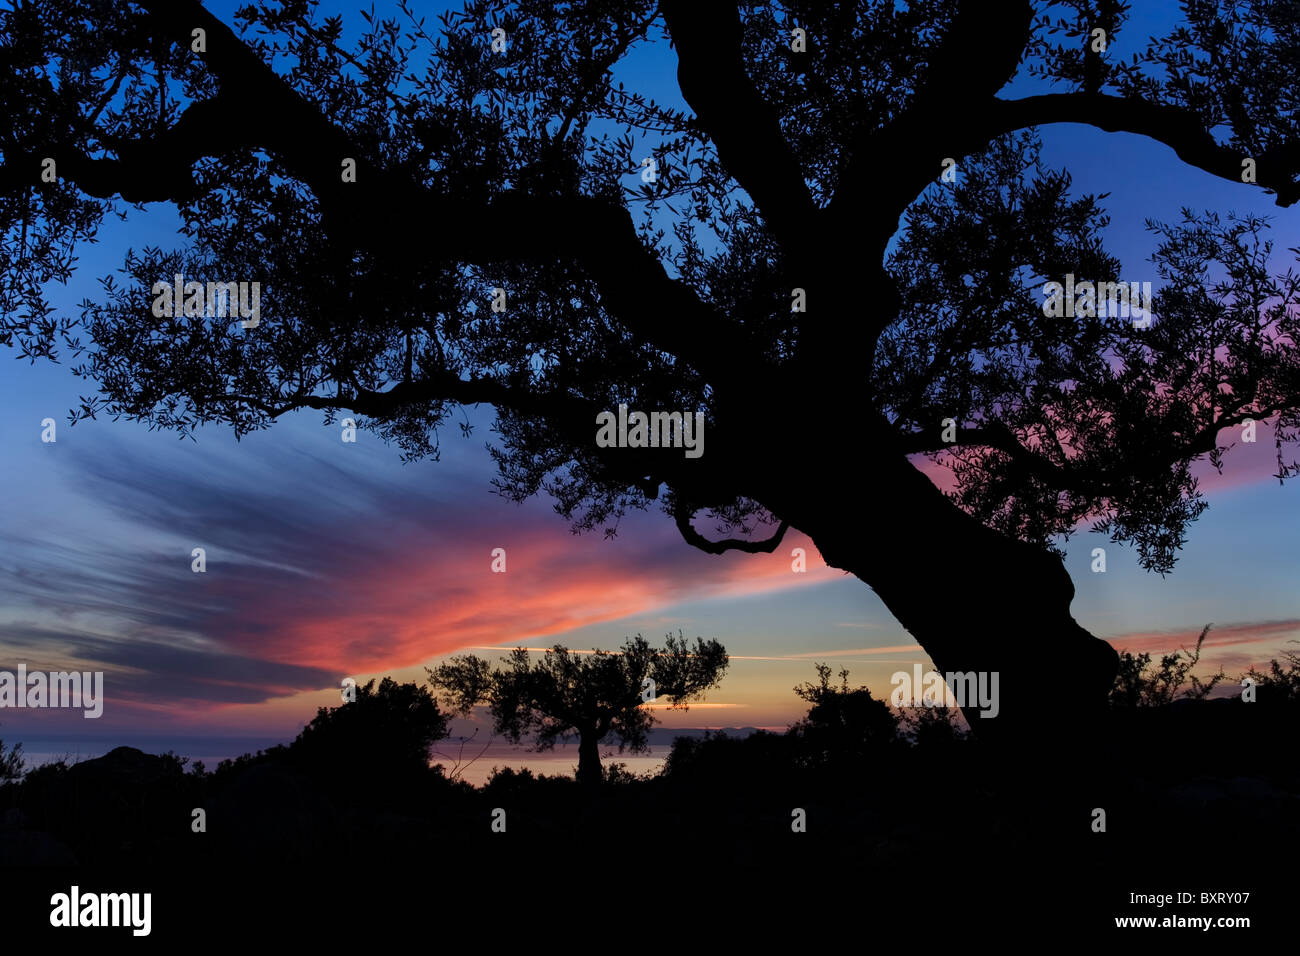 Olive Tree at dusk - Stock Image